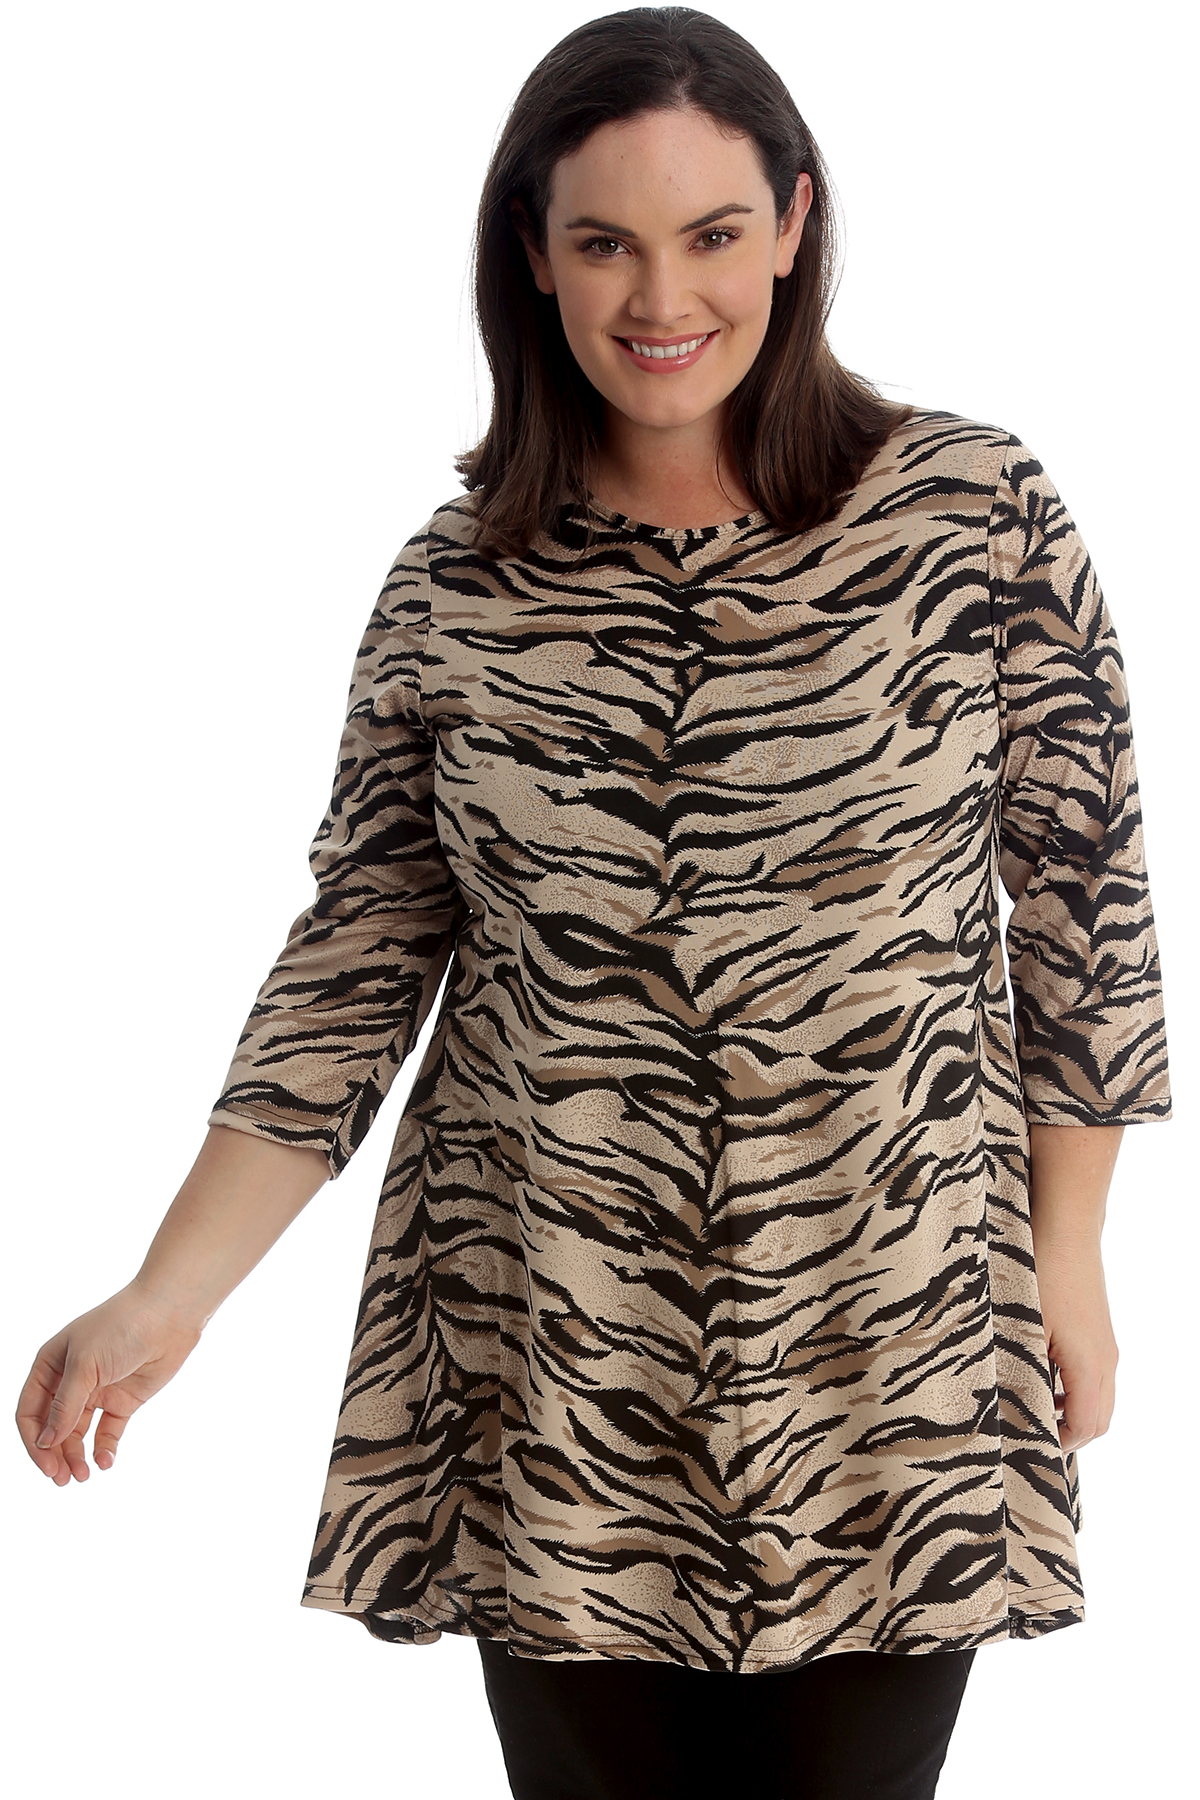 Details about New Women Plus Size Swing Top Ladies Tiger Animal Print Dress  Skater Tunic Style